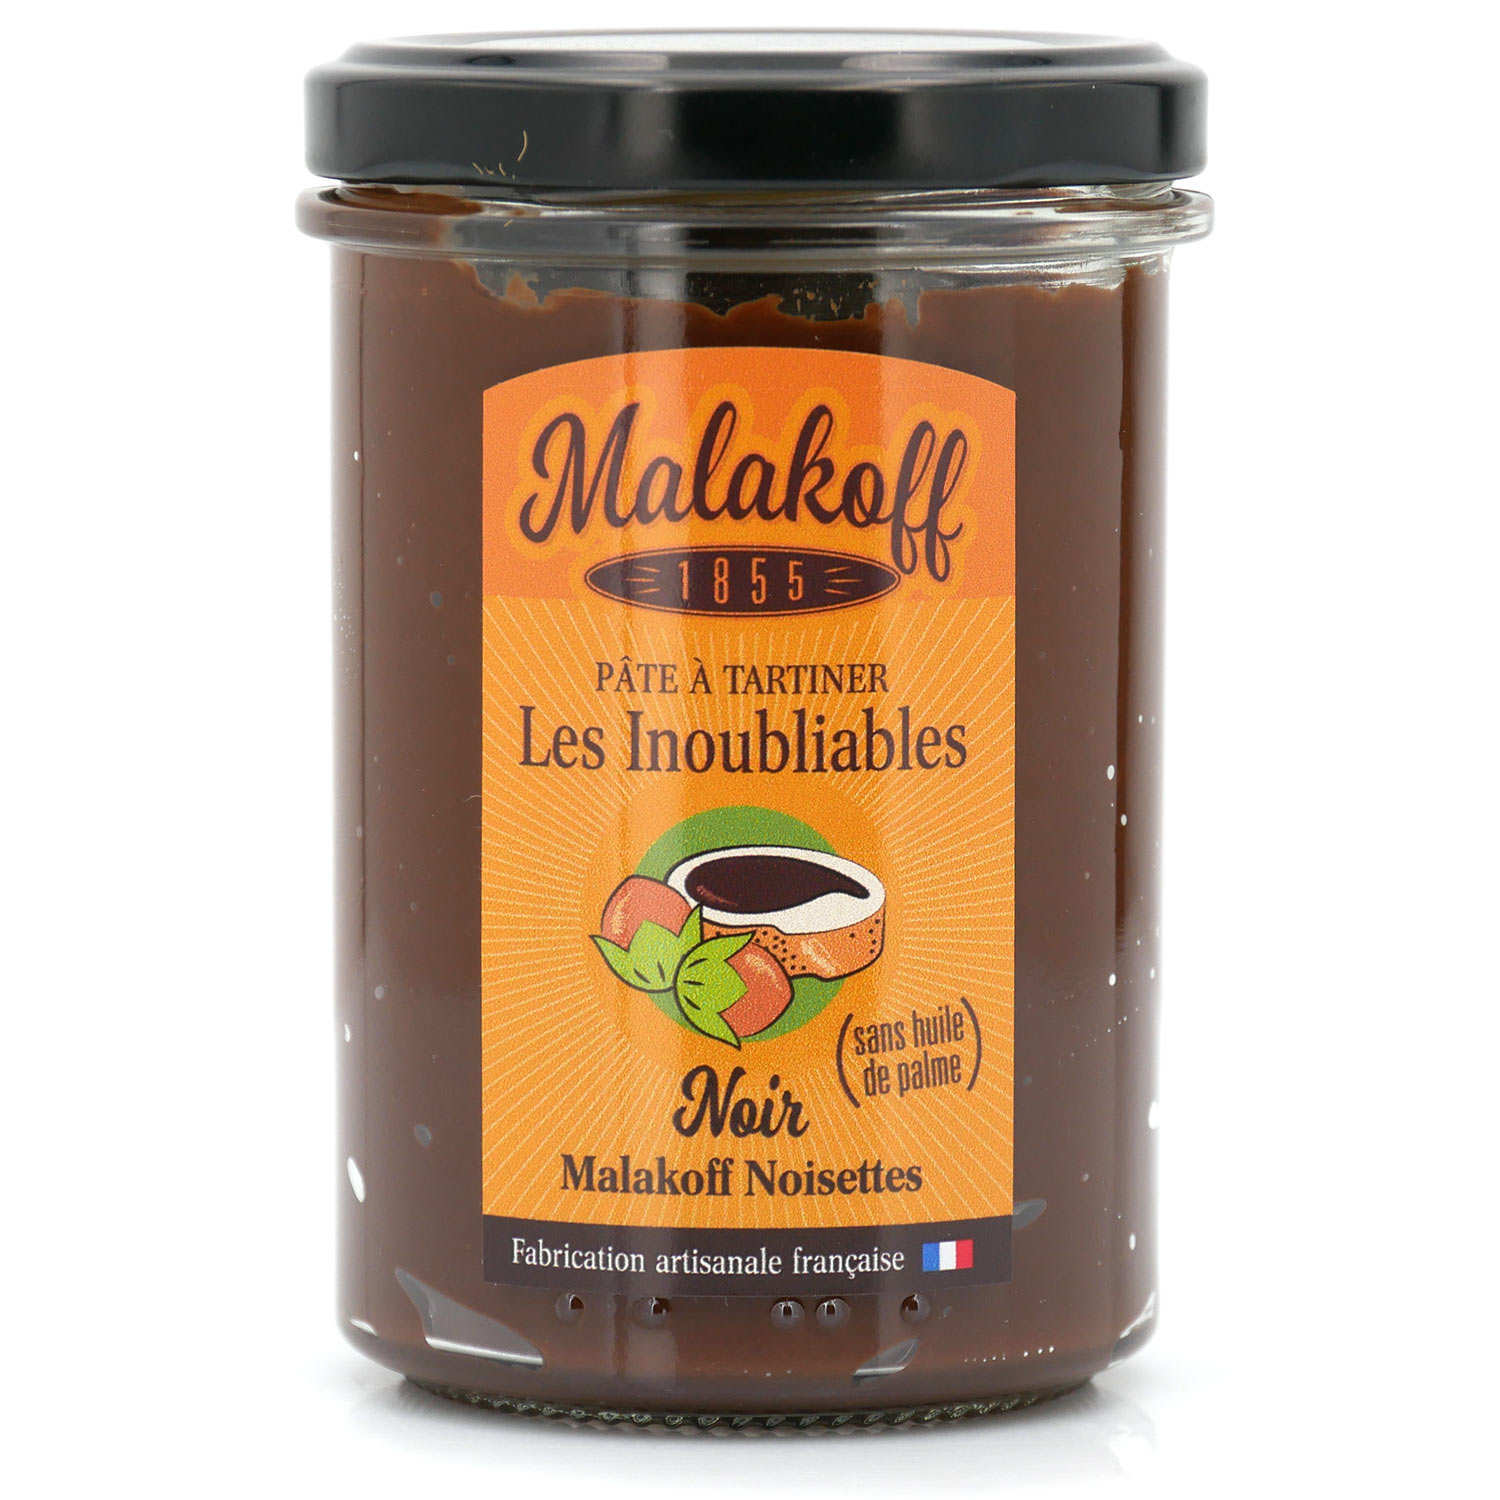 Malakoff spread with dark chocolate and hazelnuts